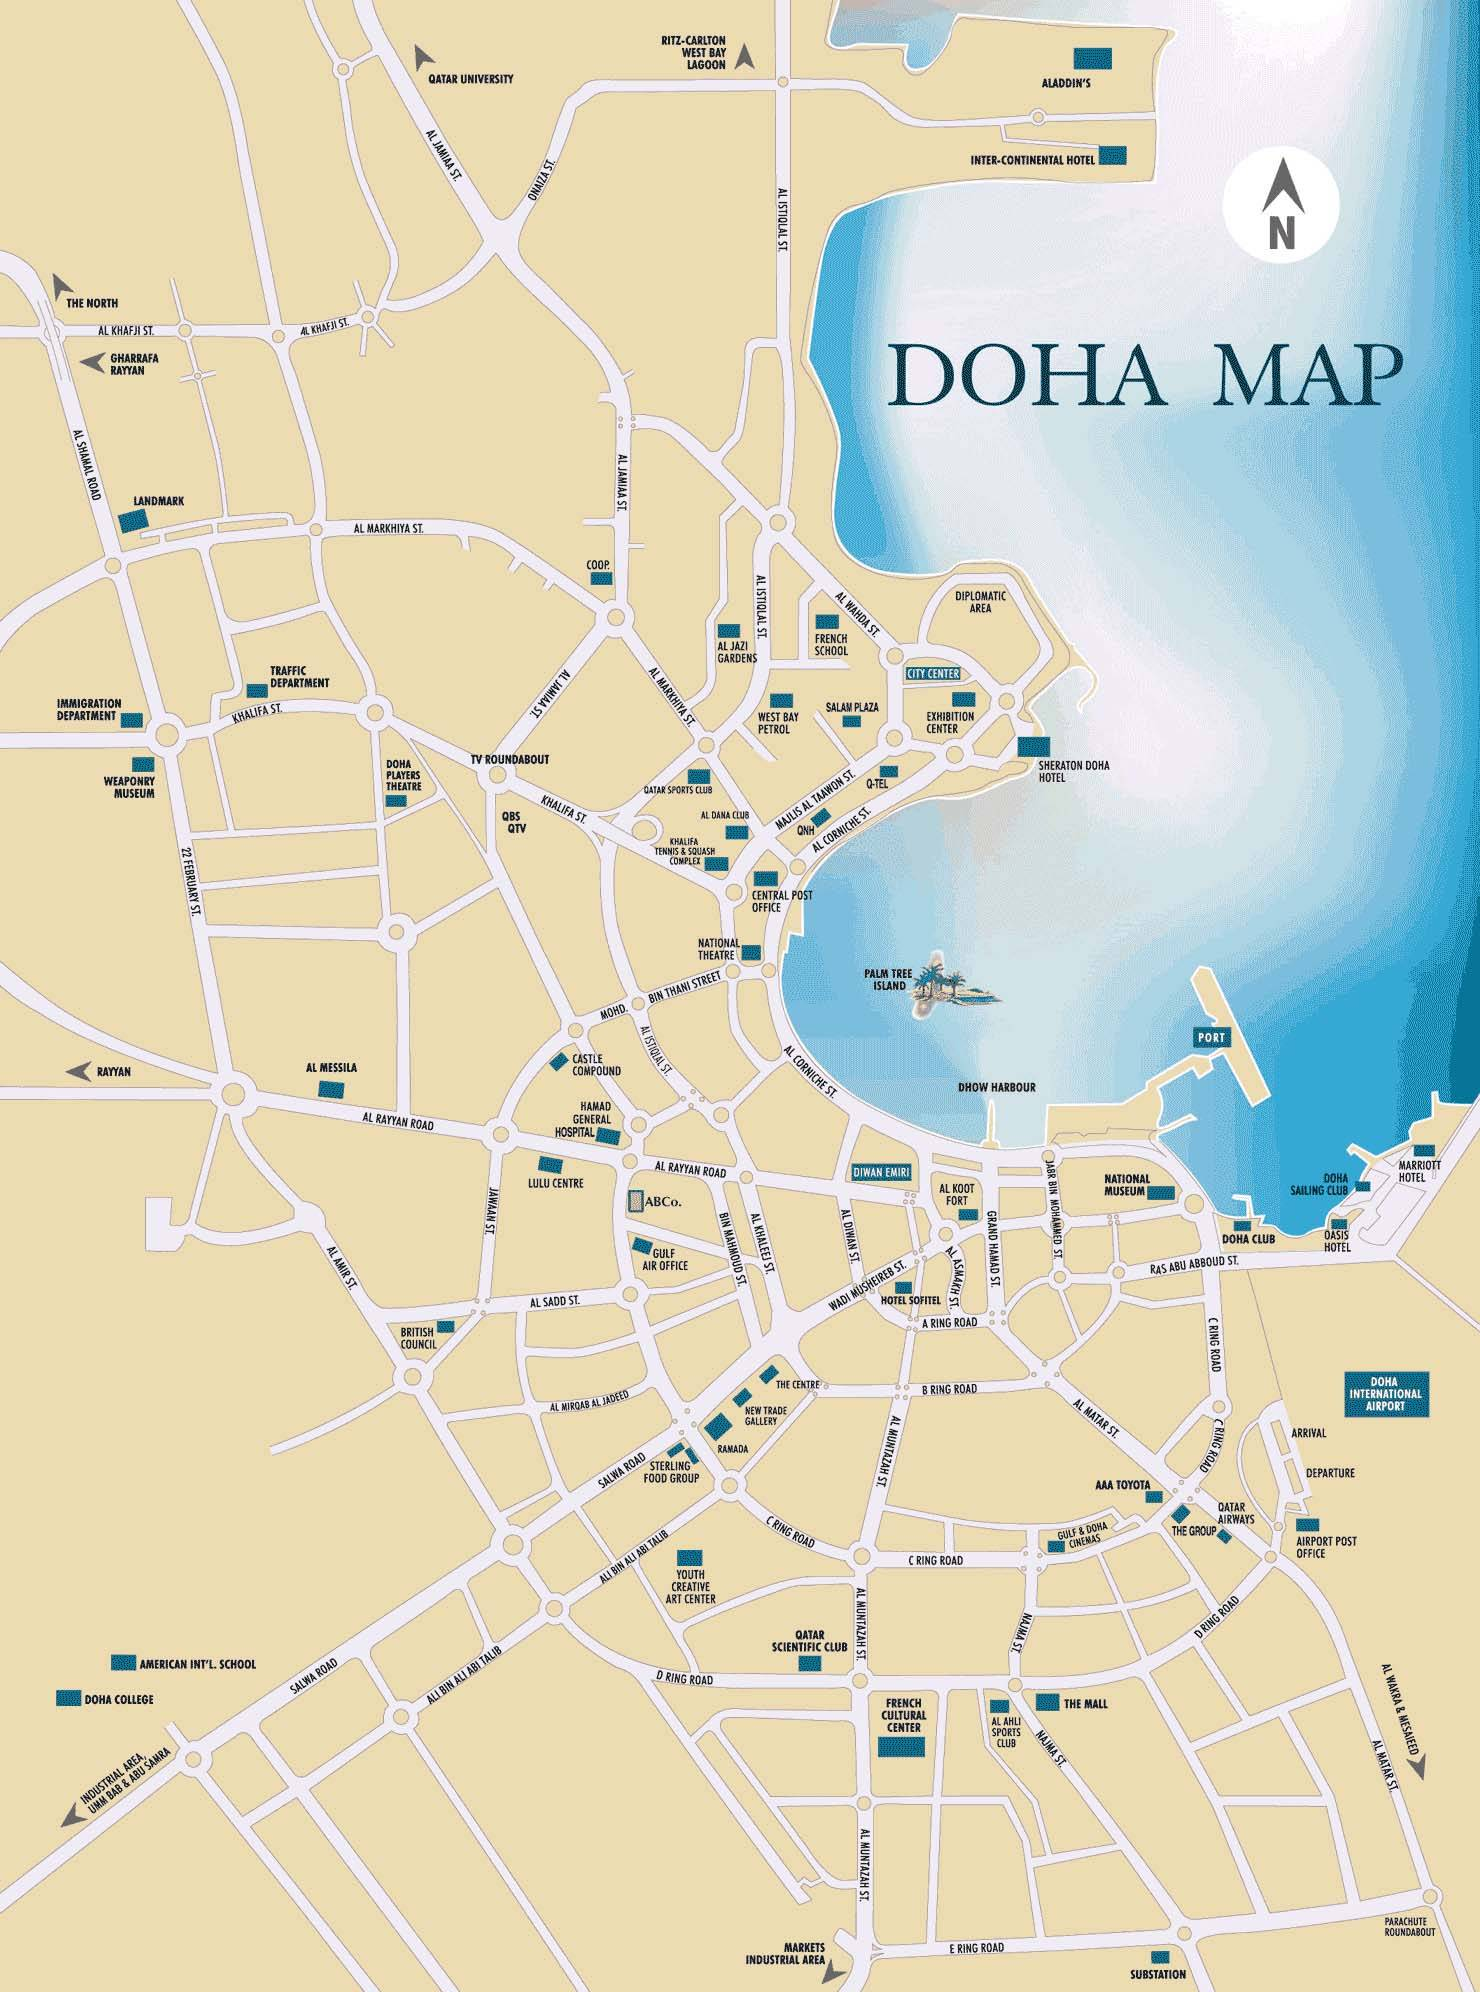 Large doha maps for free download and print high resolution and large map of doha 1 gumiabroncs Choice Image